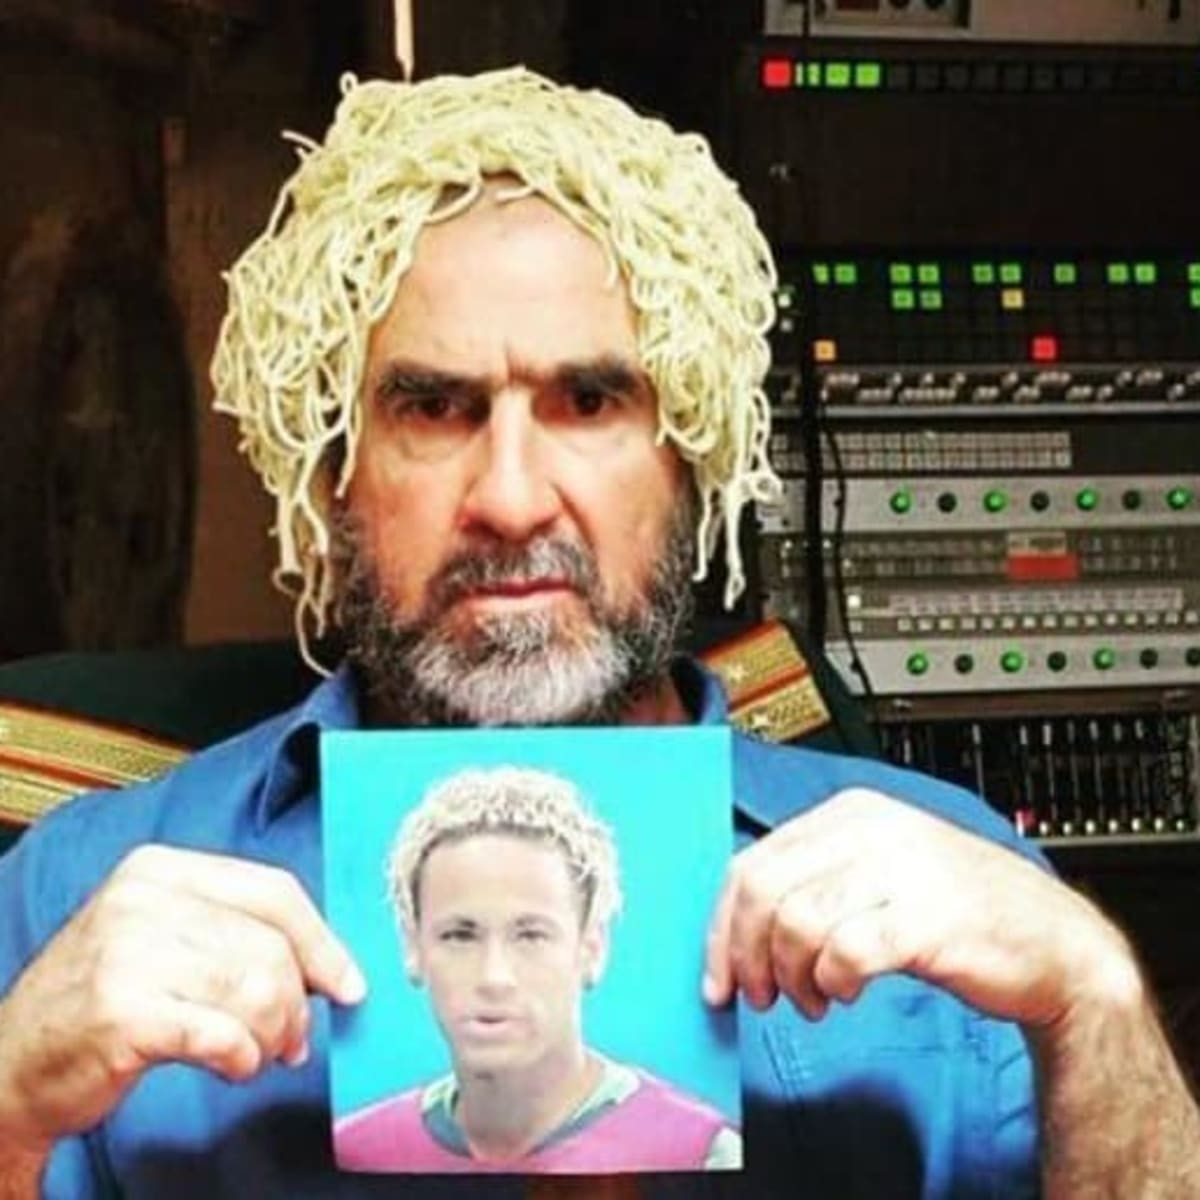 Eric cantona has sent a cryptic message to psg forward neymar on instagram after it was reported that the former manchester united player. Man Utd Legend Eric Cantona Imitates Neymar S New Haircut By Putting Spaghetti On His Head Sports Illustrated